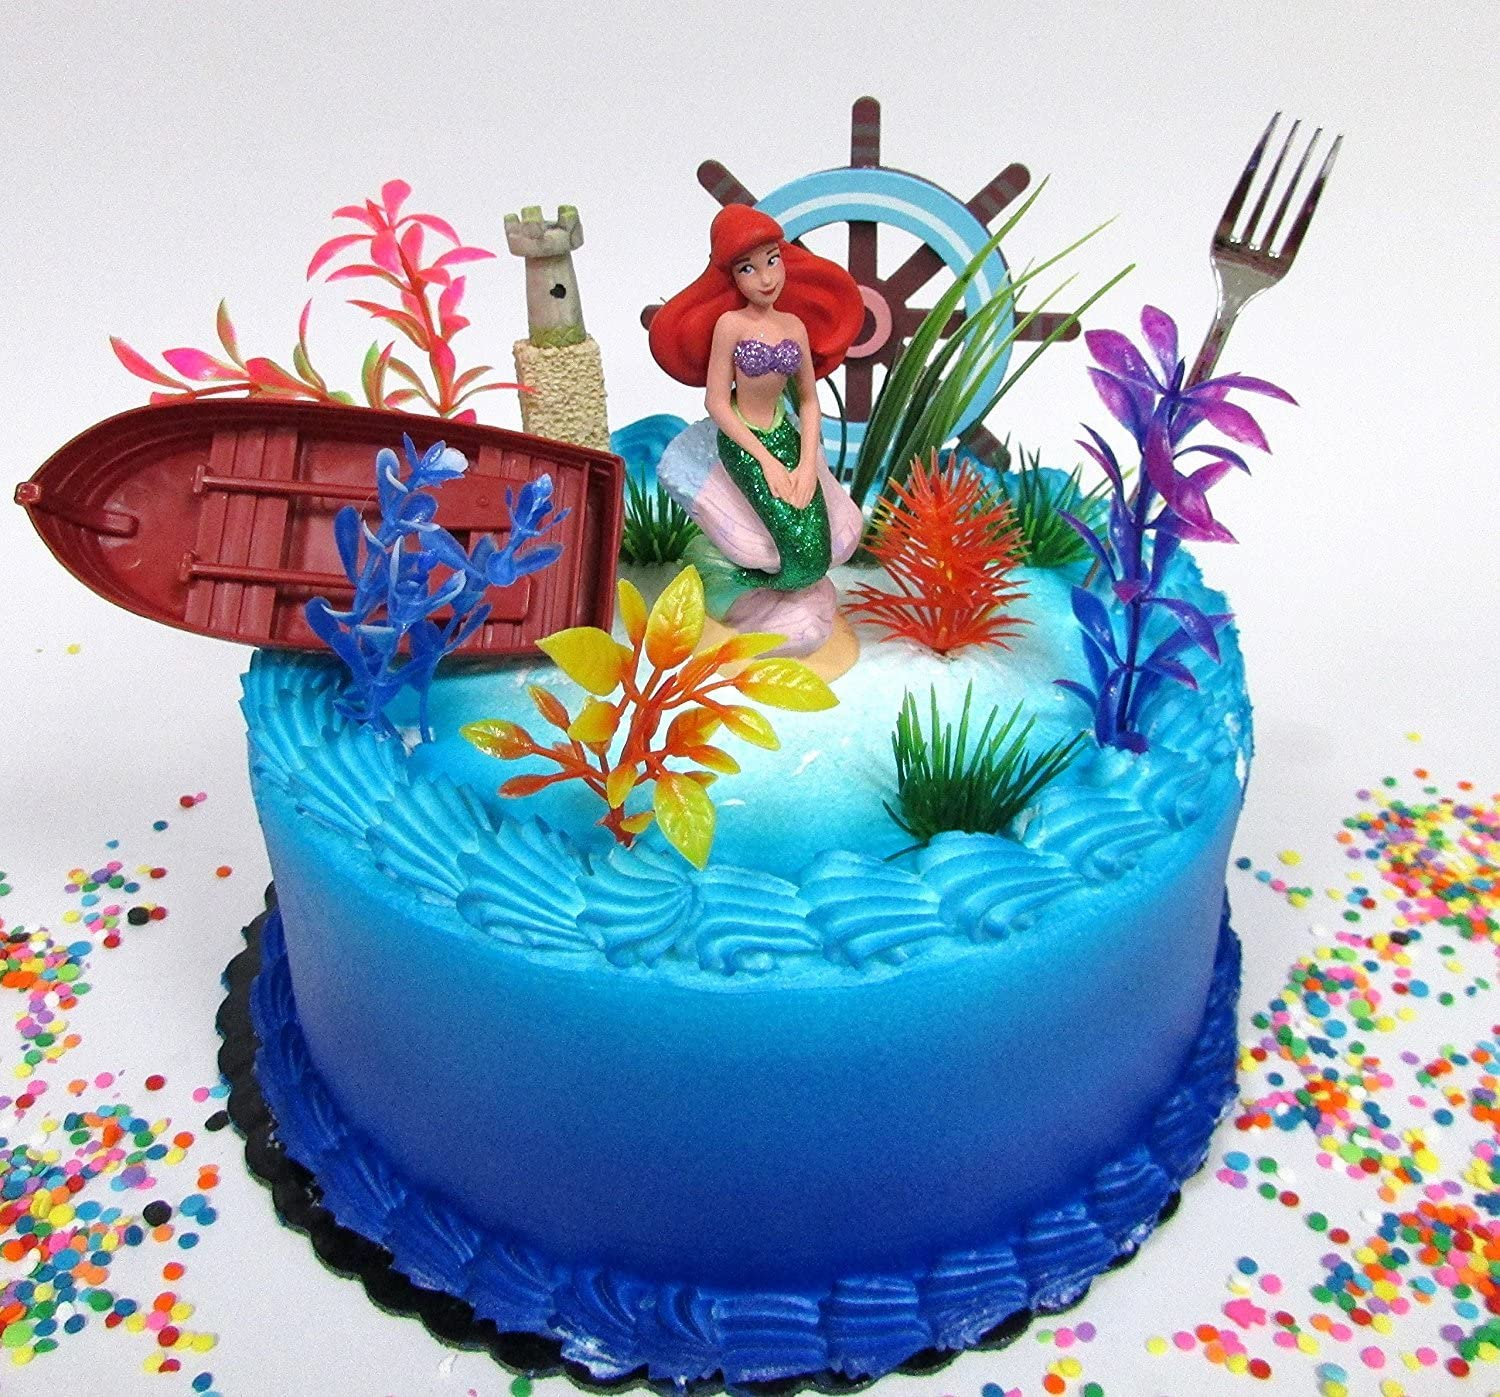 Awe Inspiring Amazon Com Cake Toppers Little Mermaid Princess Ariel Themed Funny Birthday Cards Online Alyptdamsfinfo